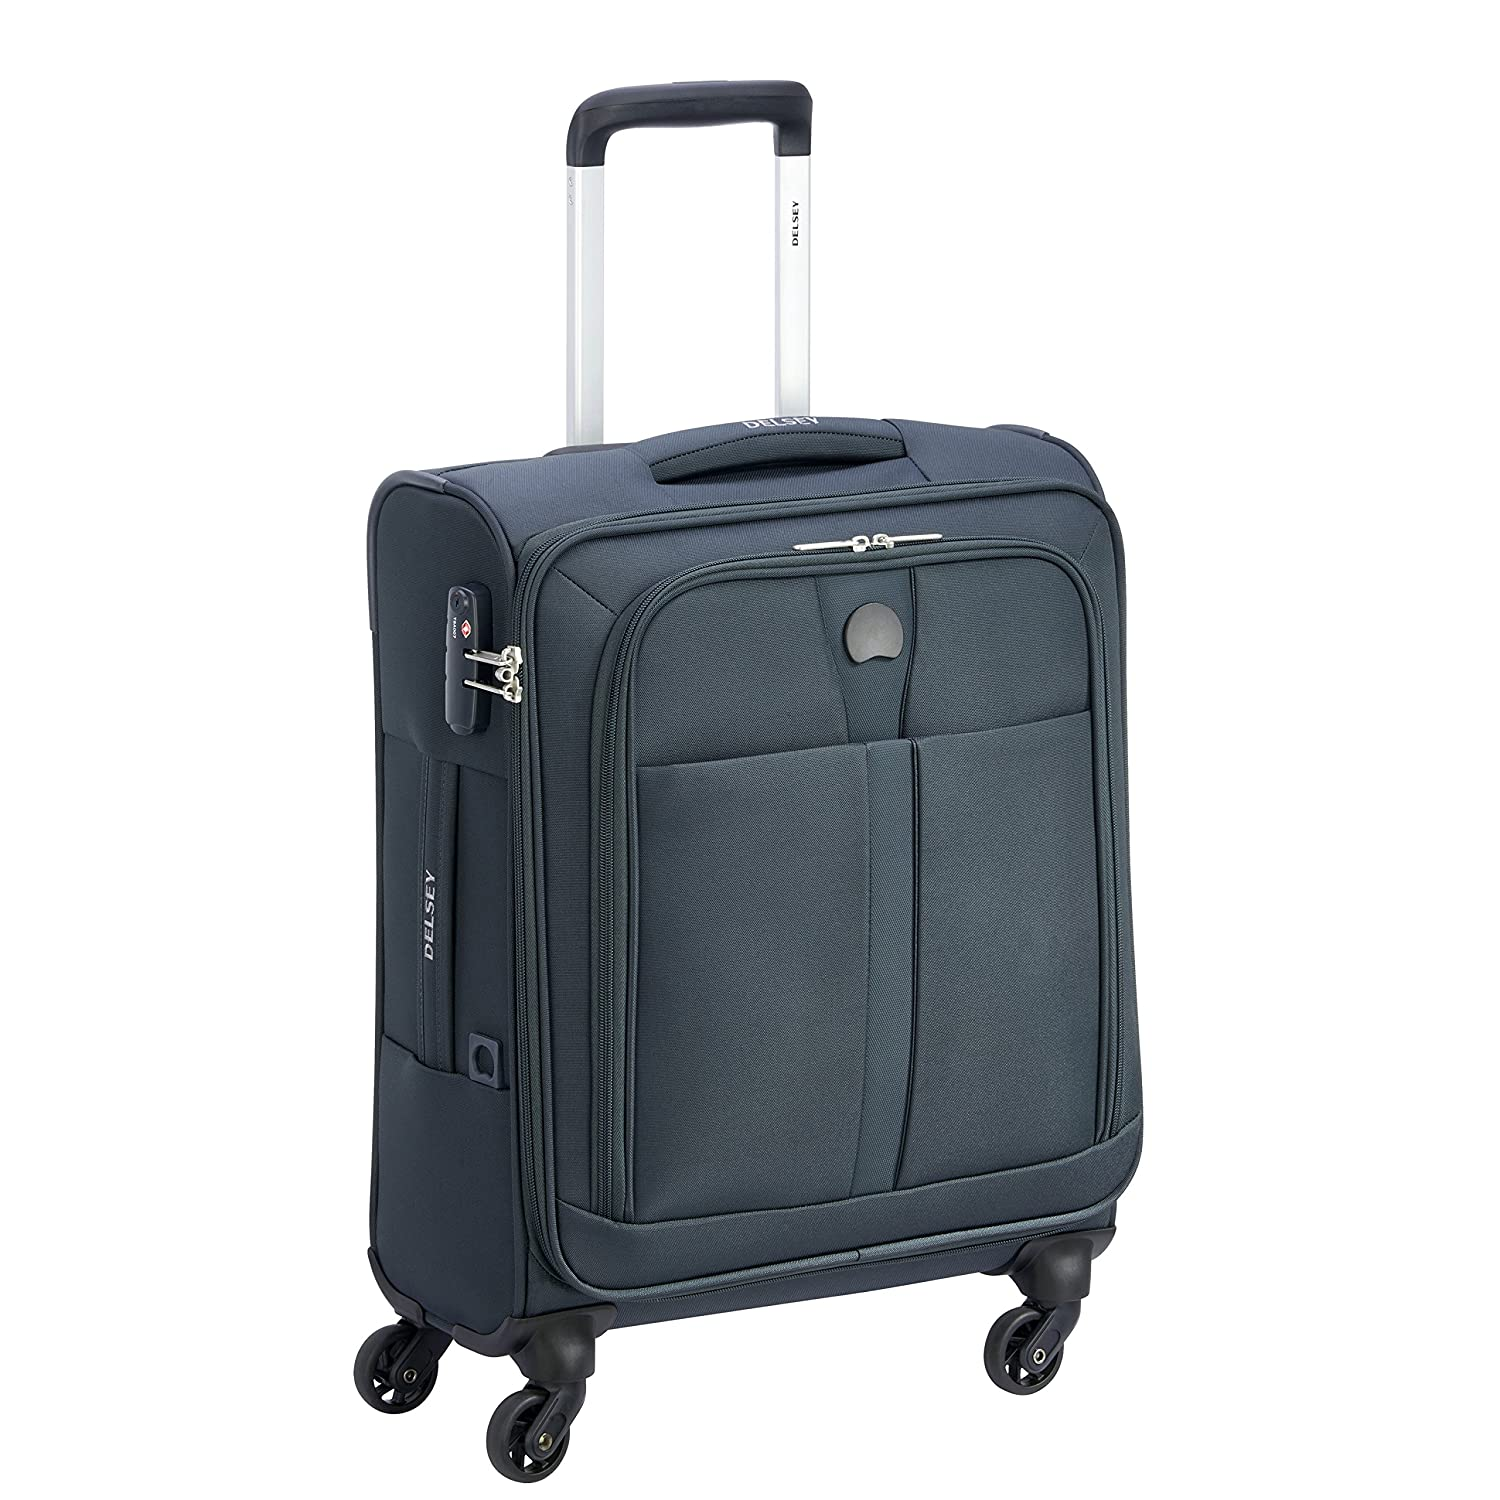 Delsey Paris Maloti Bagage Cabine, 44 Litres, Anthracite 353480301